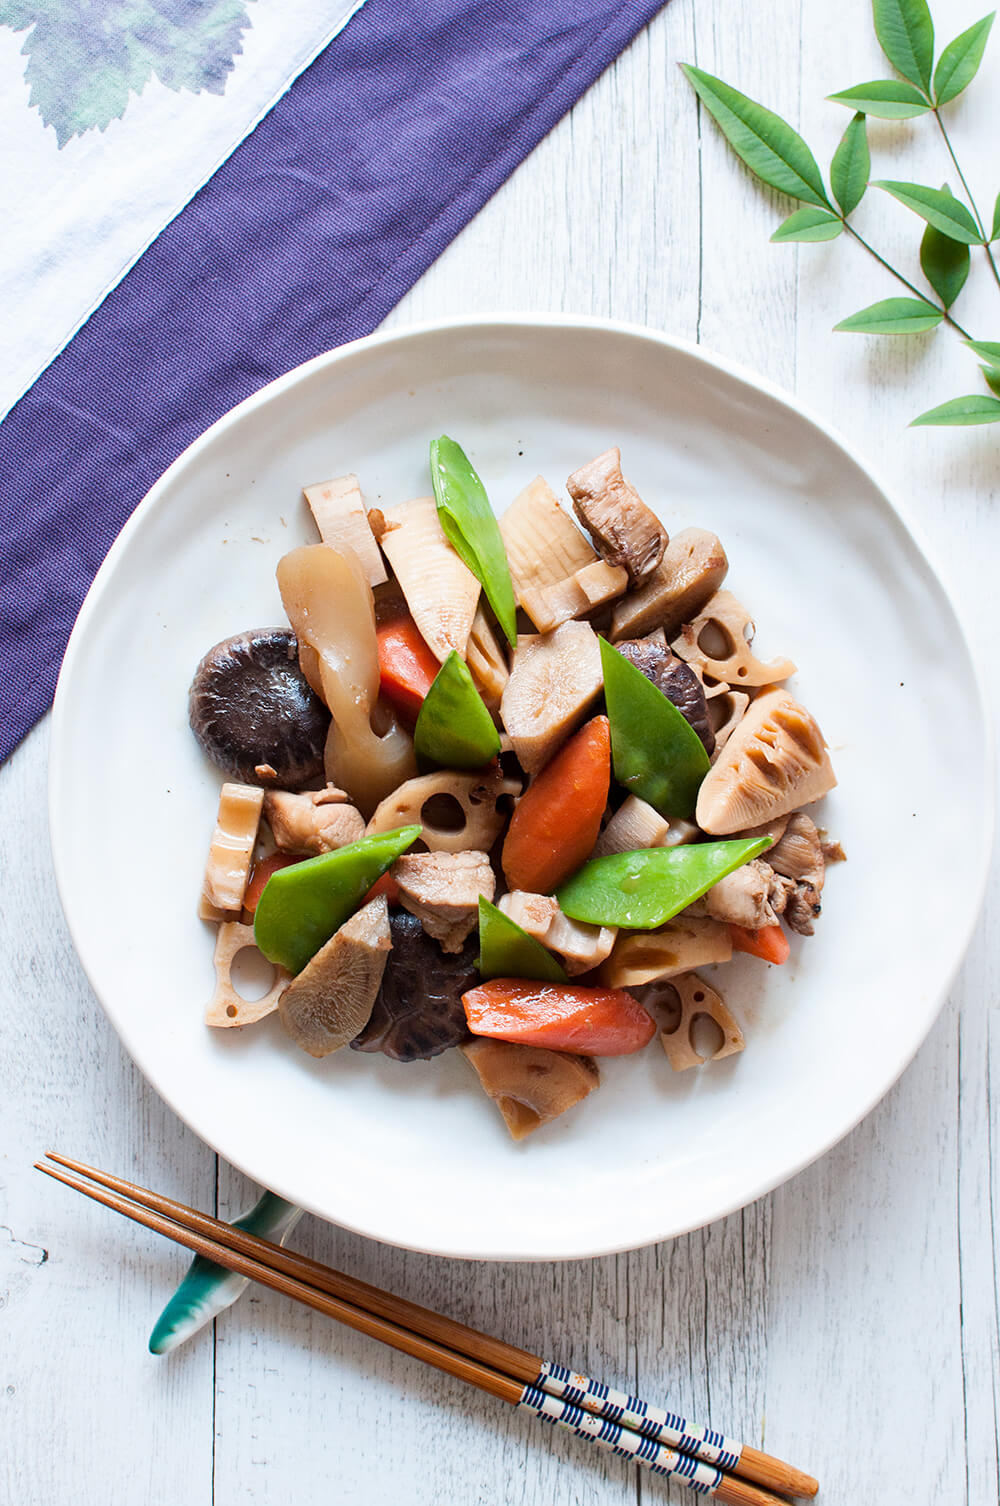 The flavour of Simmered Chicken and Vegetables, Chikuzenni, is a typical combination of dashi, soy sauce, mirin, sake and sugar but the ingredients are stir-fried first so the dish is much richer than other simmered dishes.